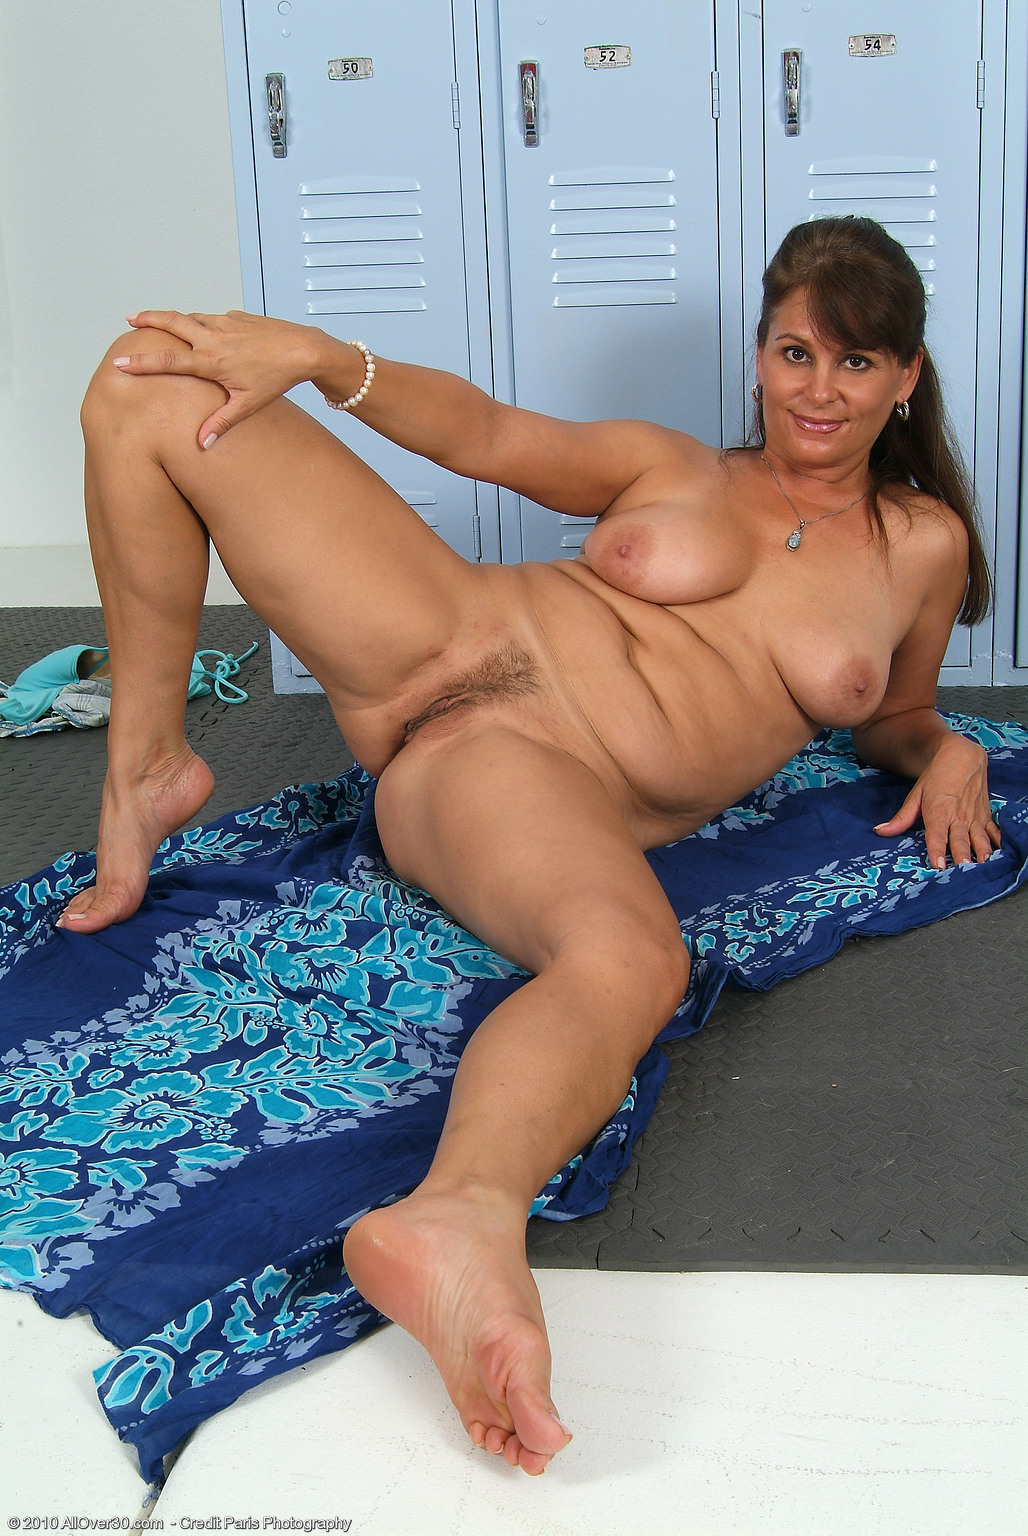 For the older mom naked pussy